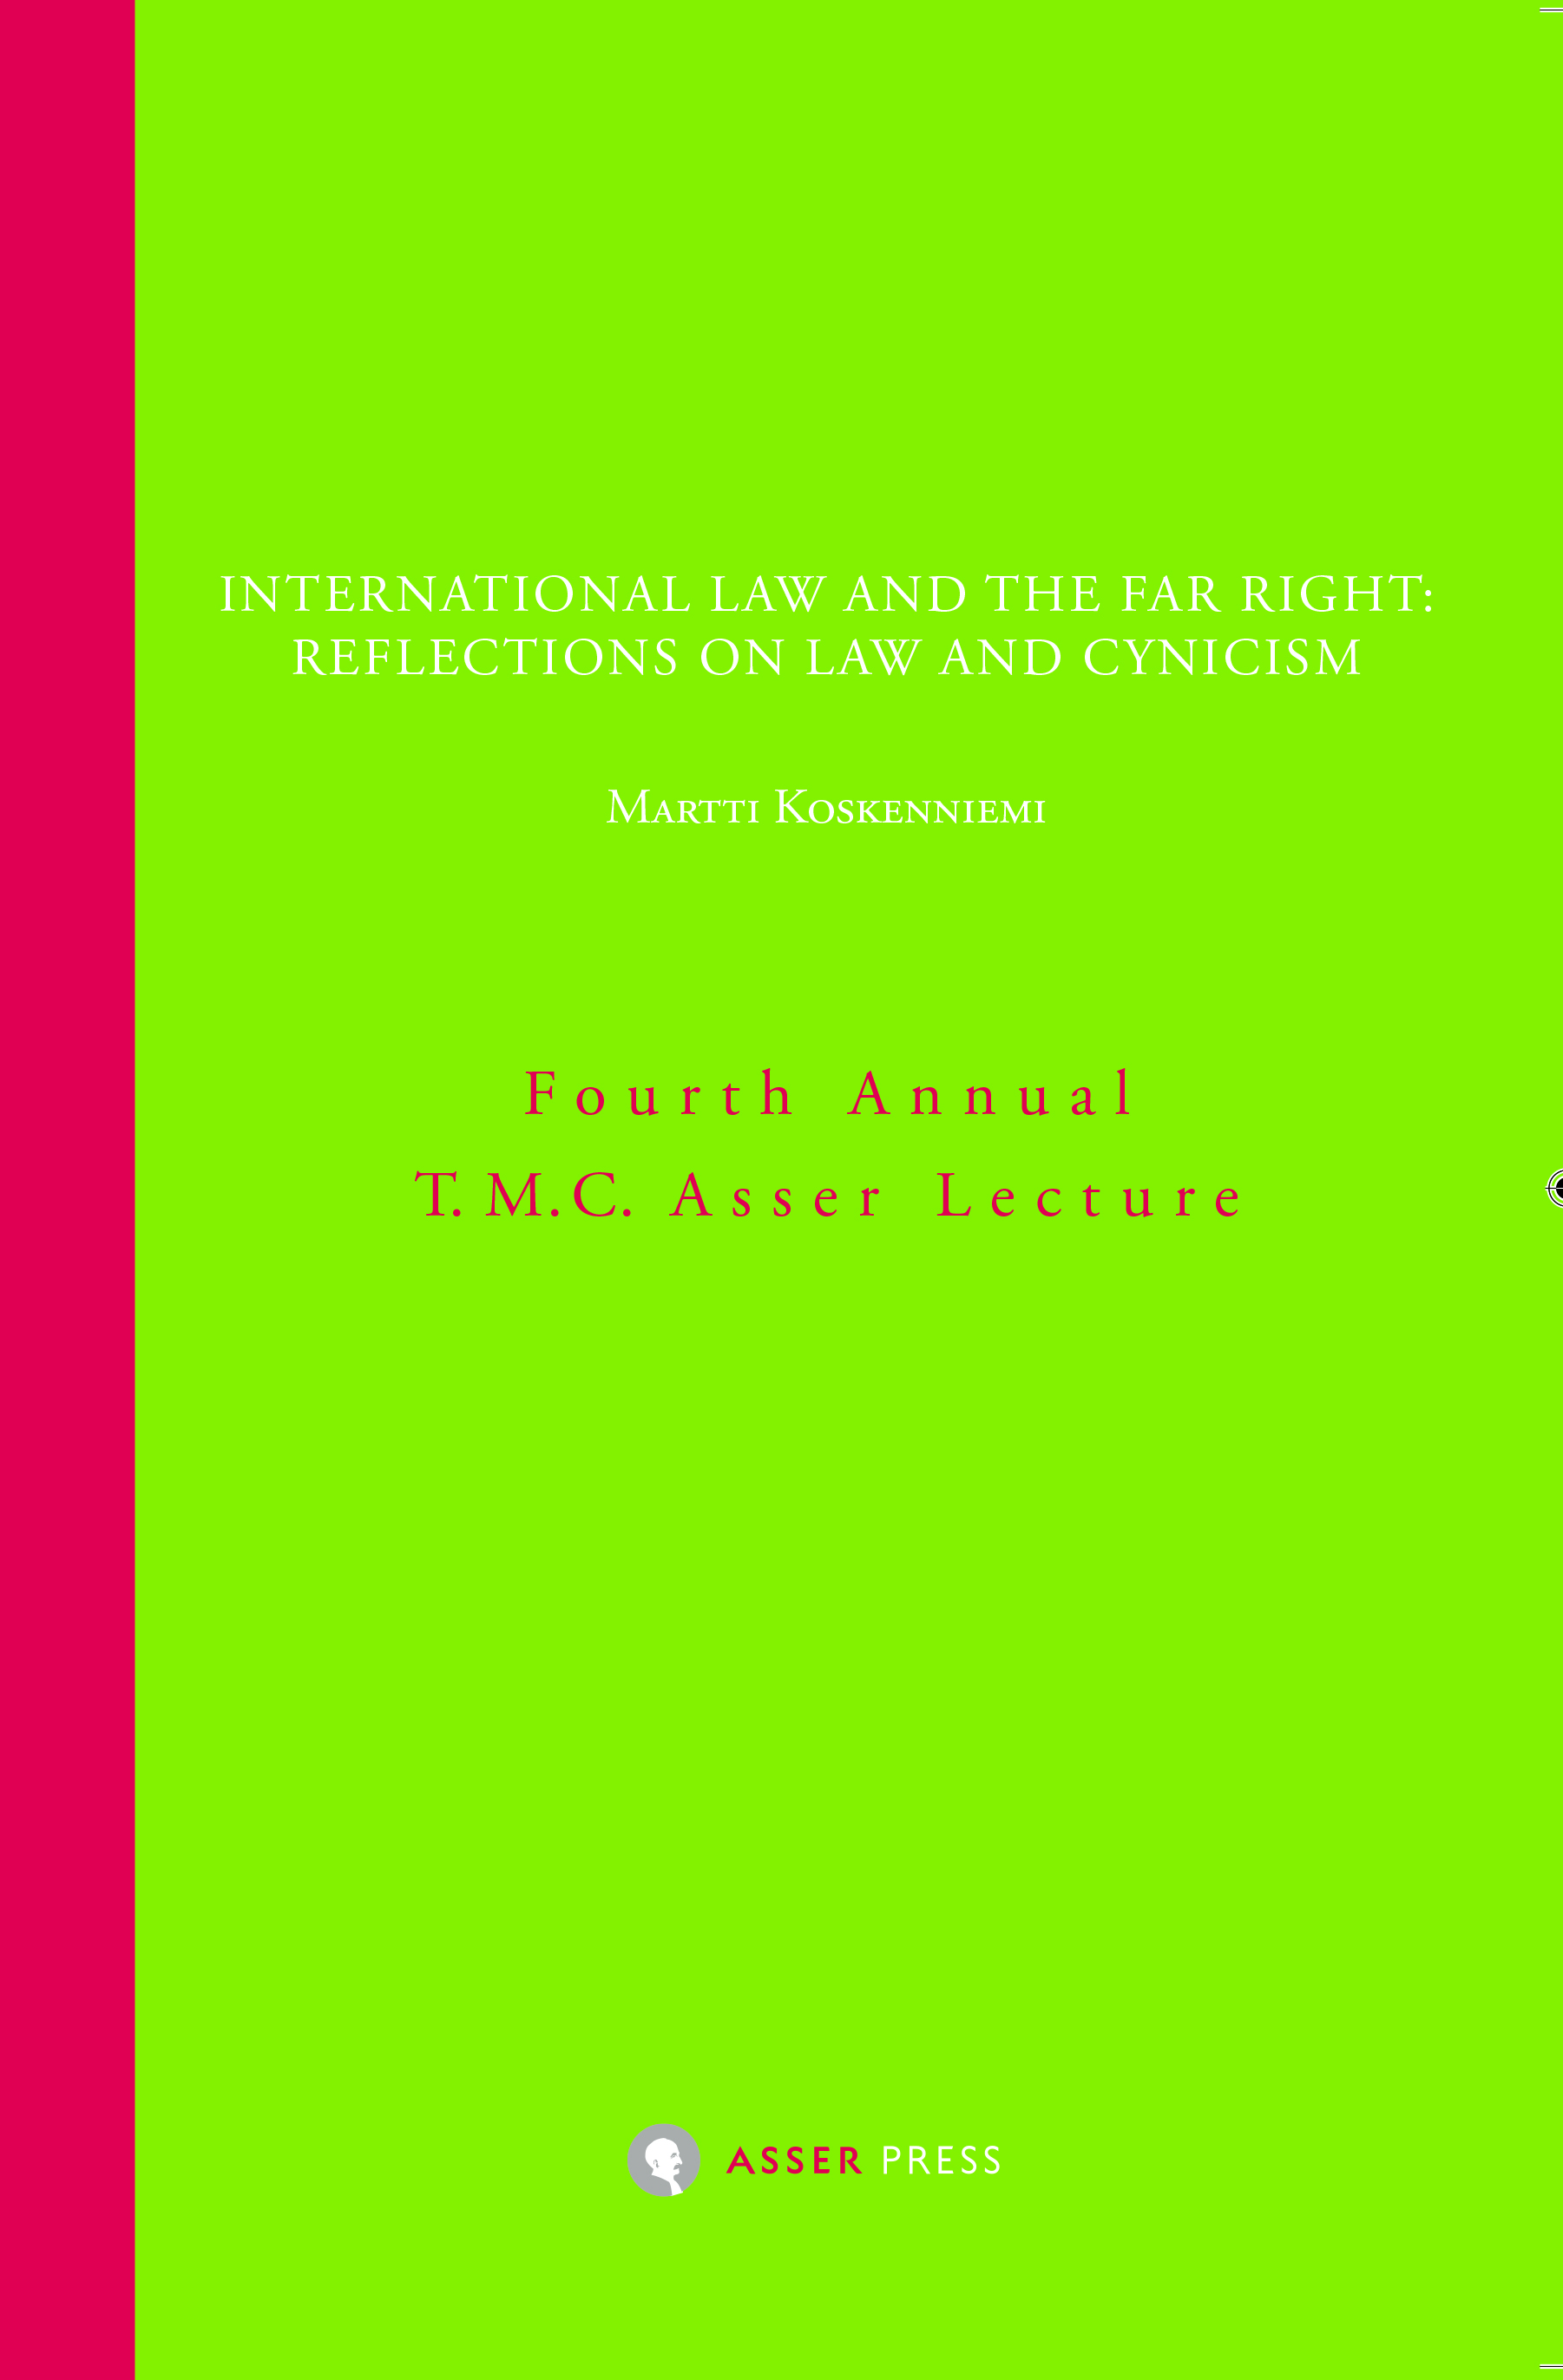 International Law and the Far Right: Reflections on Law and Cynicism